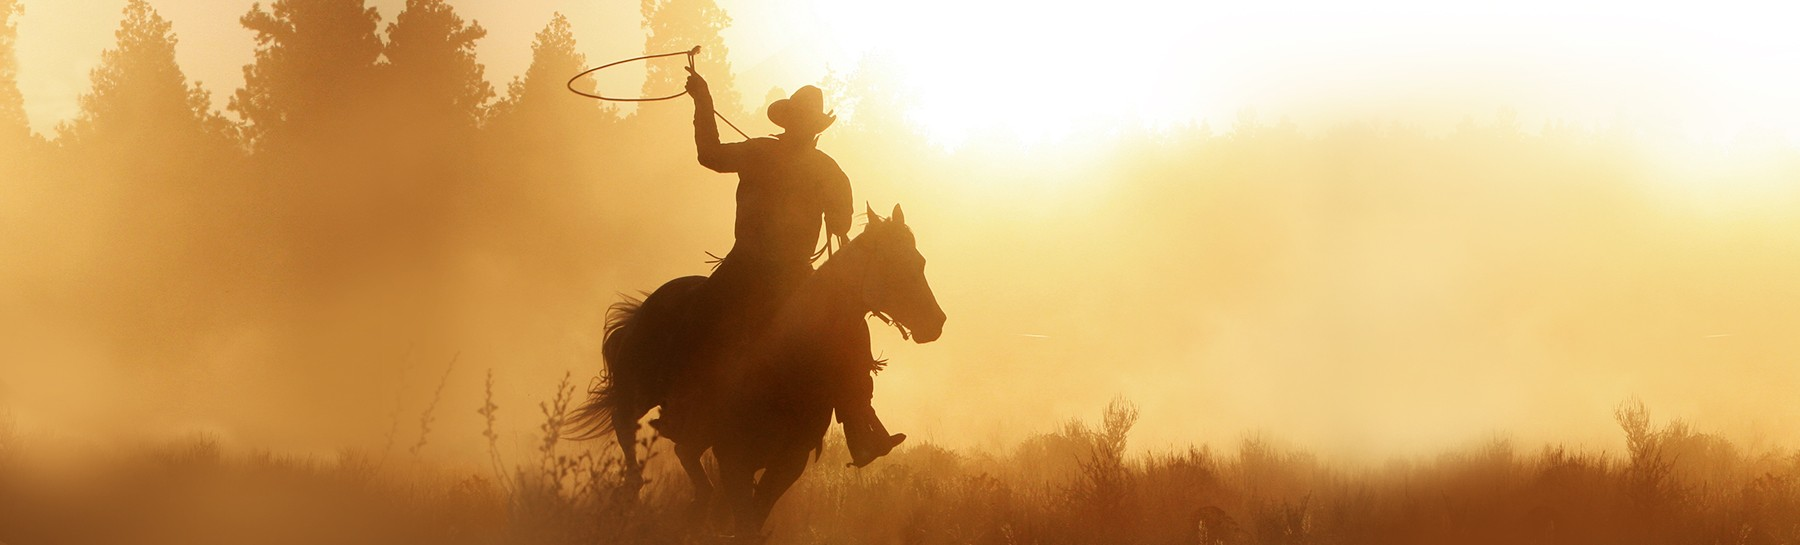 what-to-do-day-ranches-hero